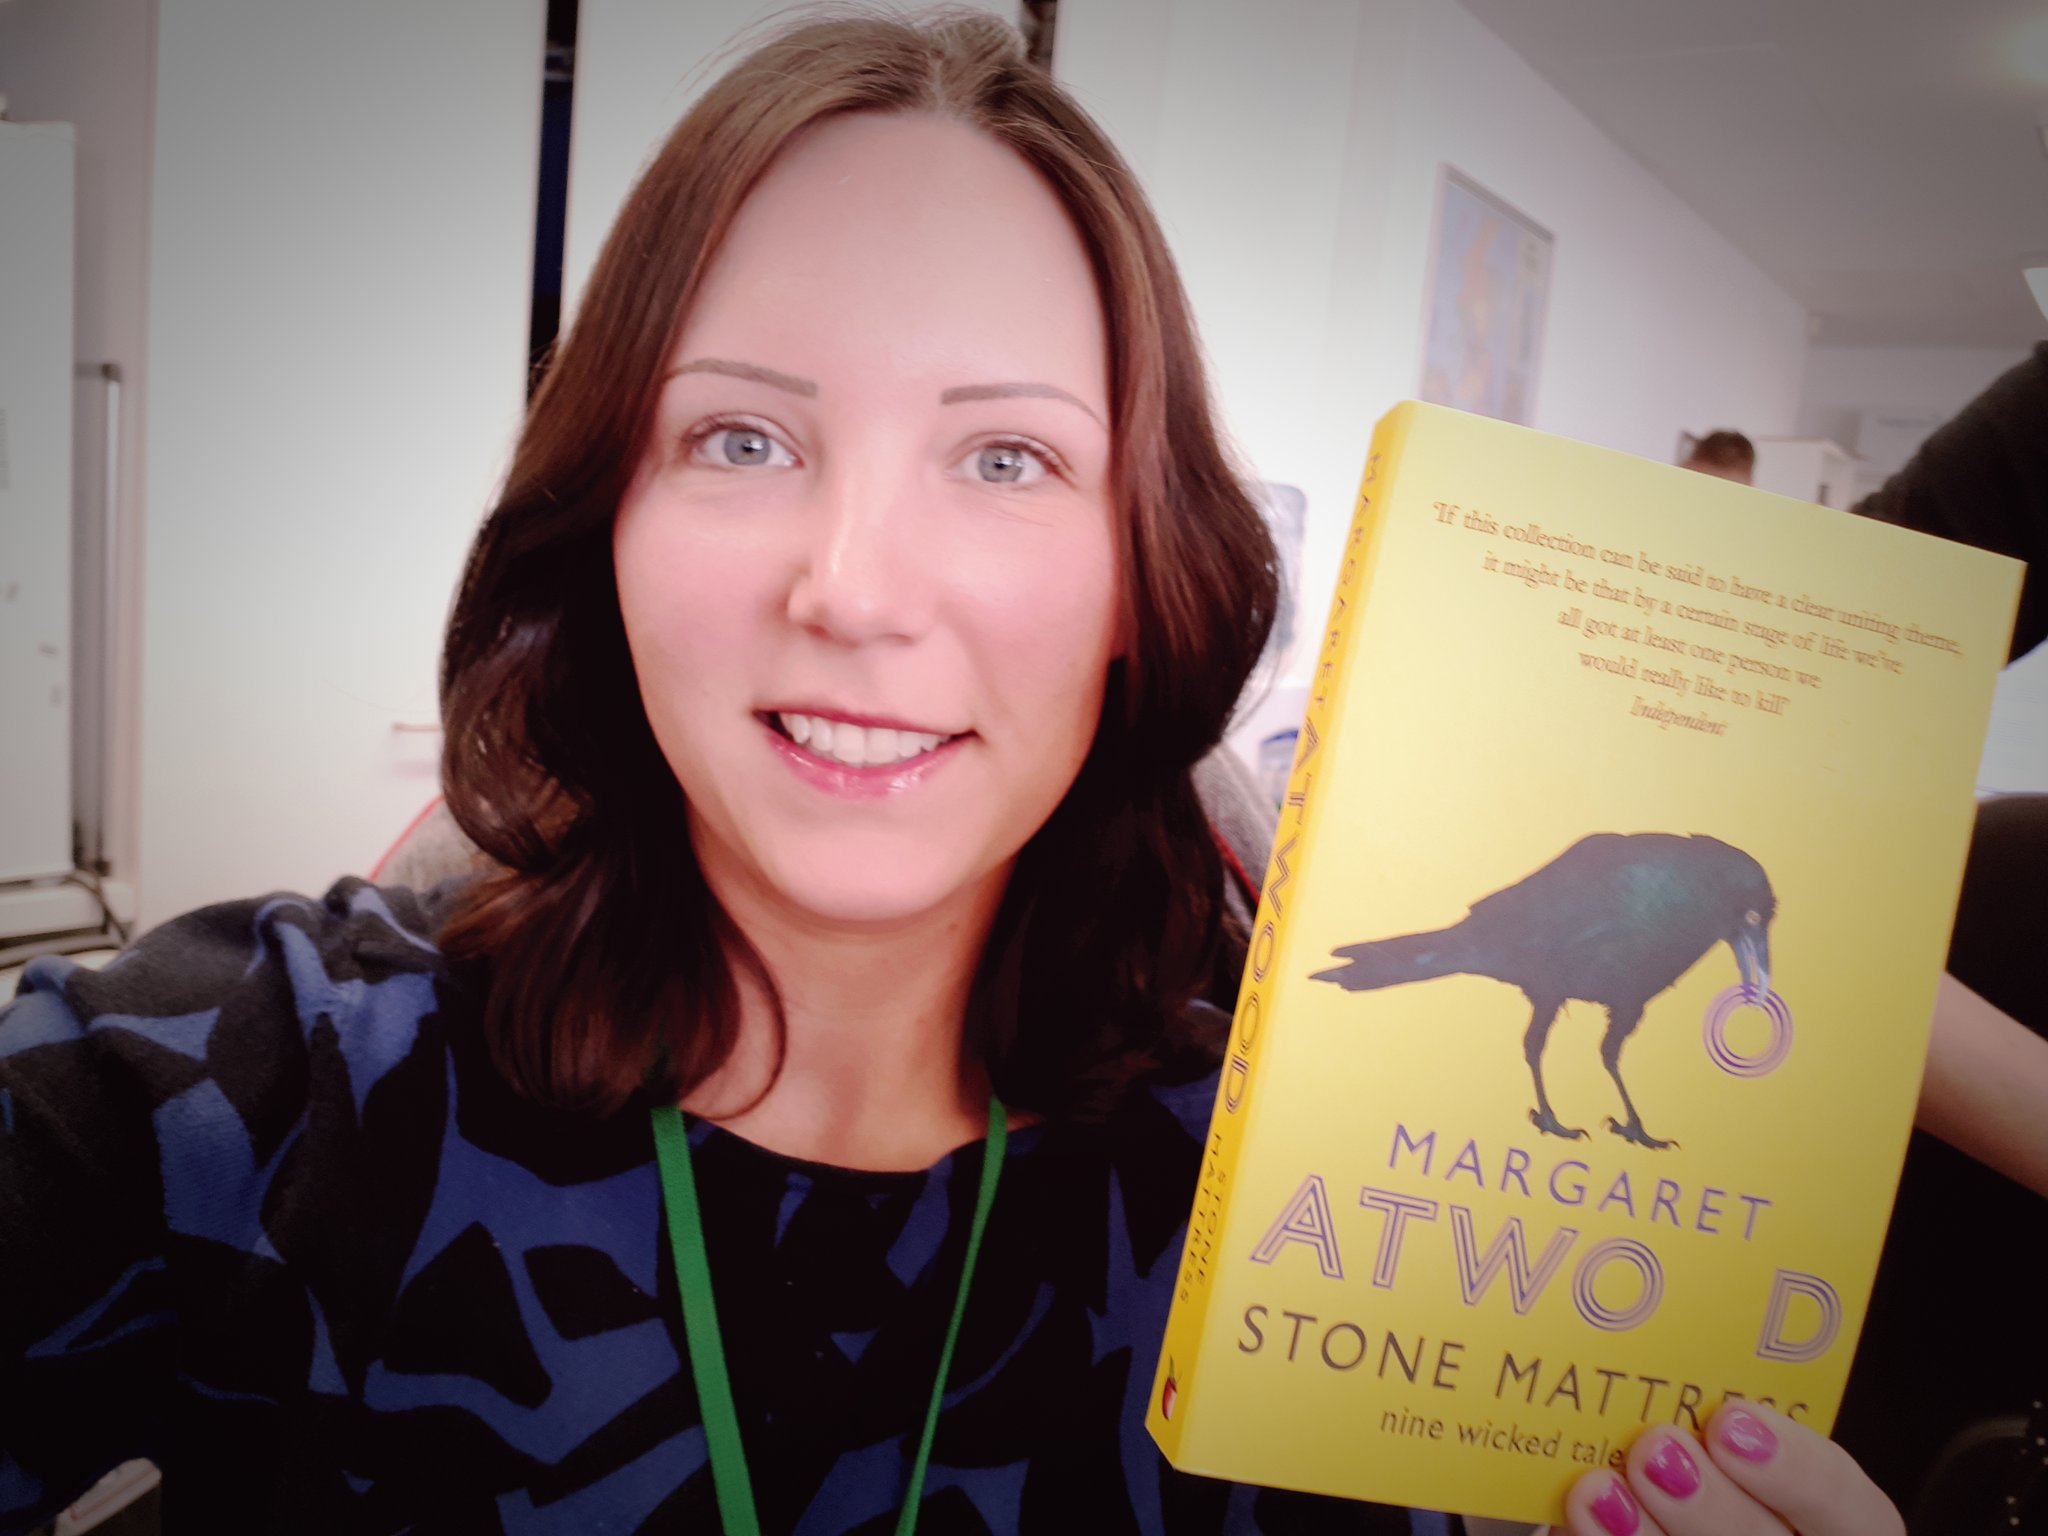 @WorldBookNight I'd like to share #stonemattress by @MargaretAtwood. Short stories are a great way to encourage reading! @readingagency #WorldBookNight https://t.co/VBRZrEimfw